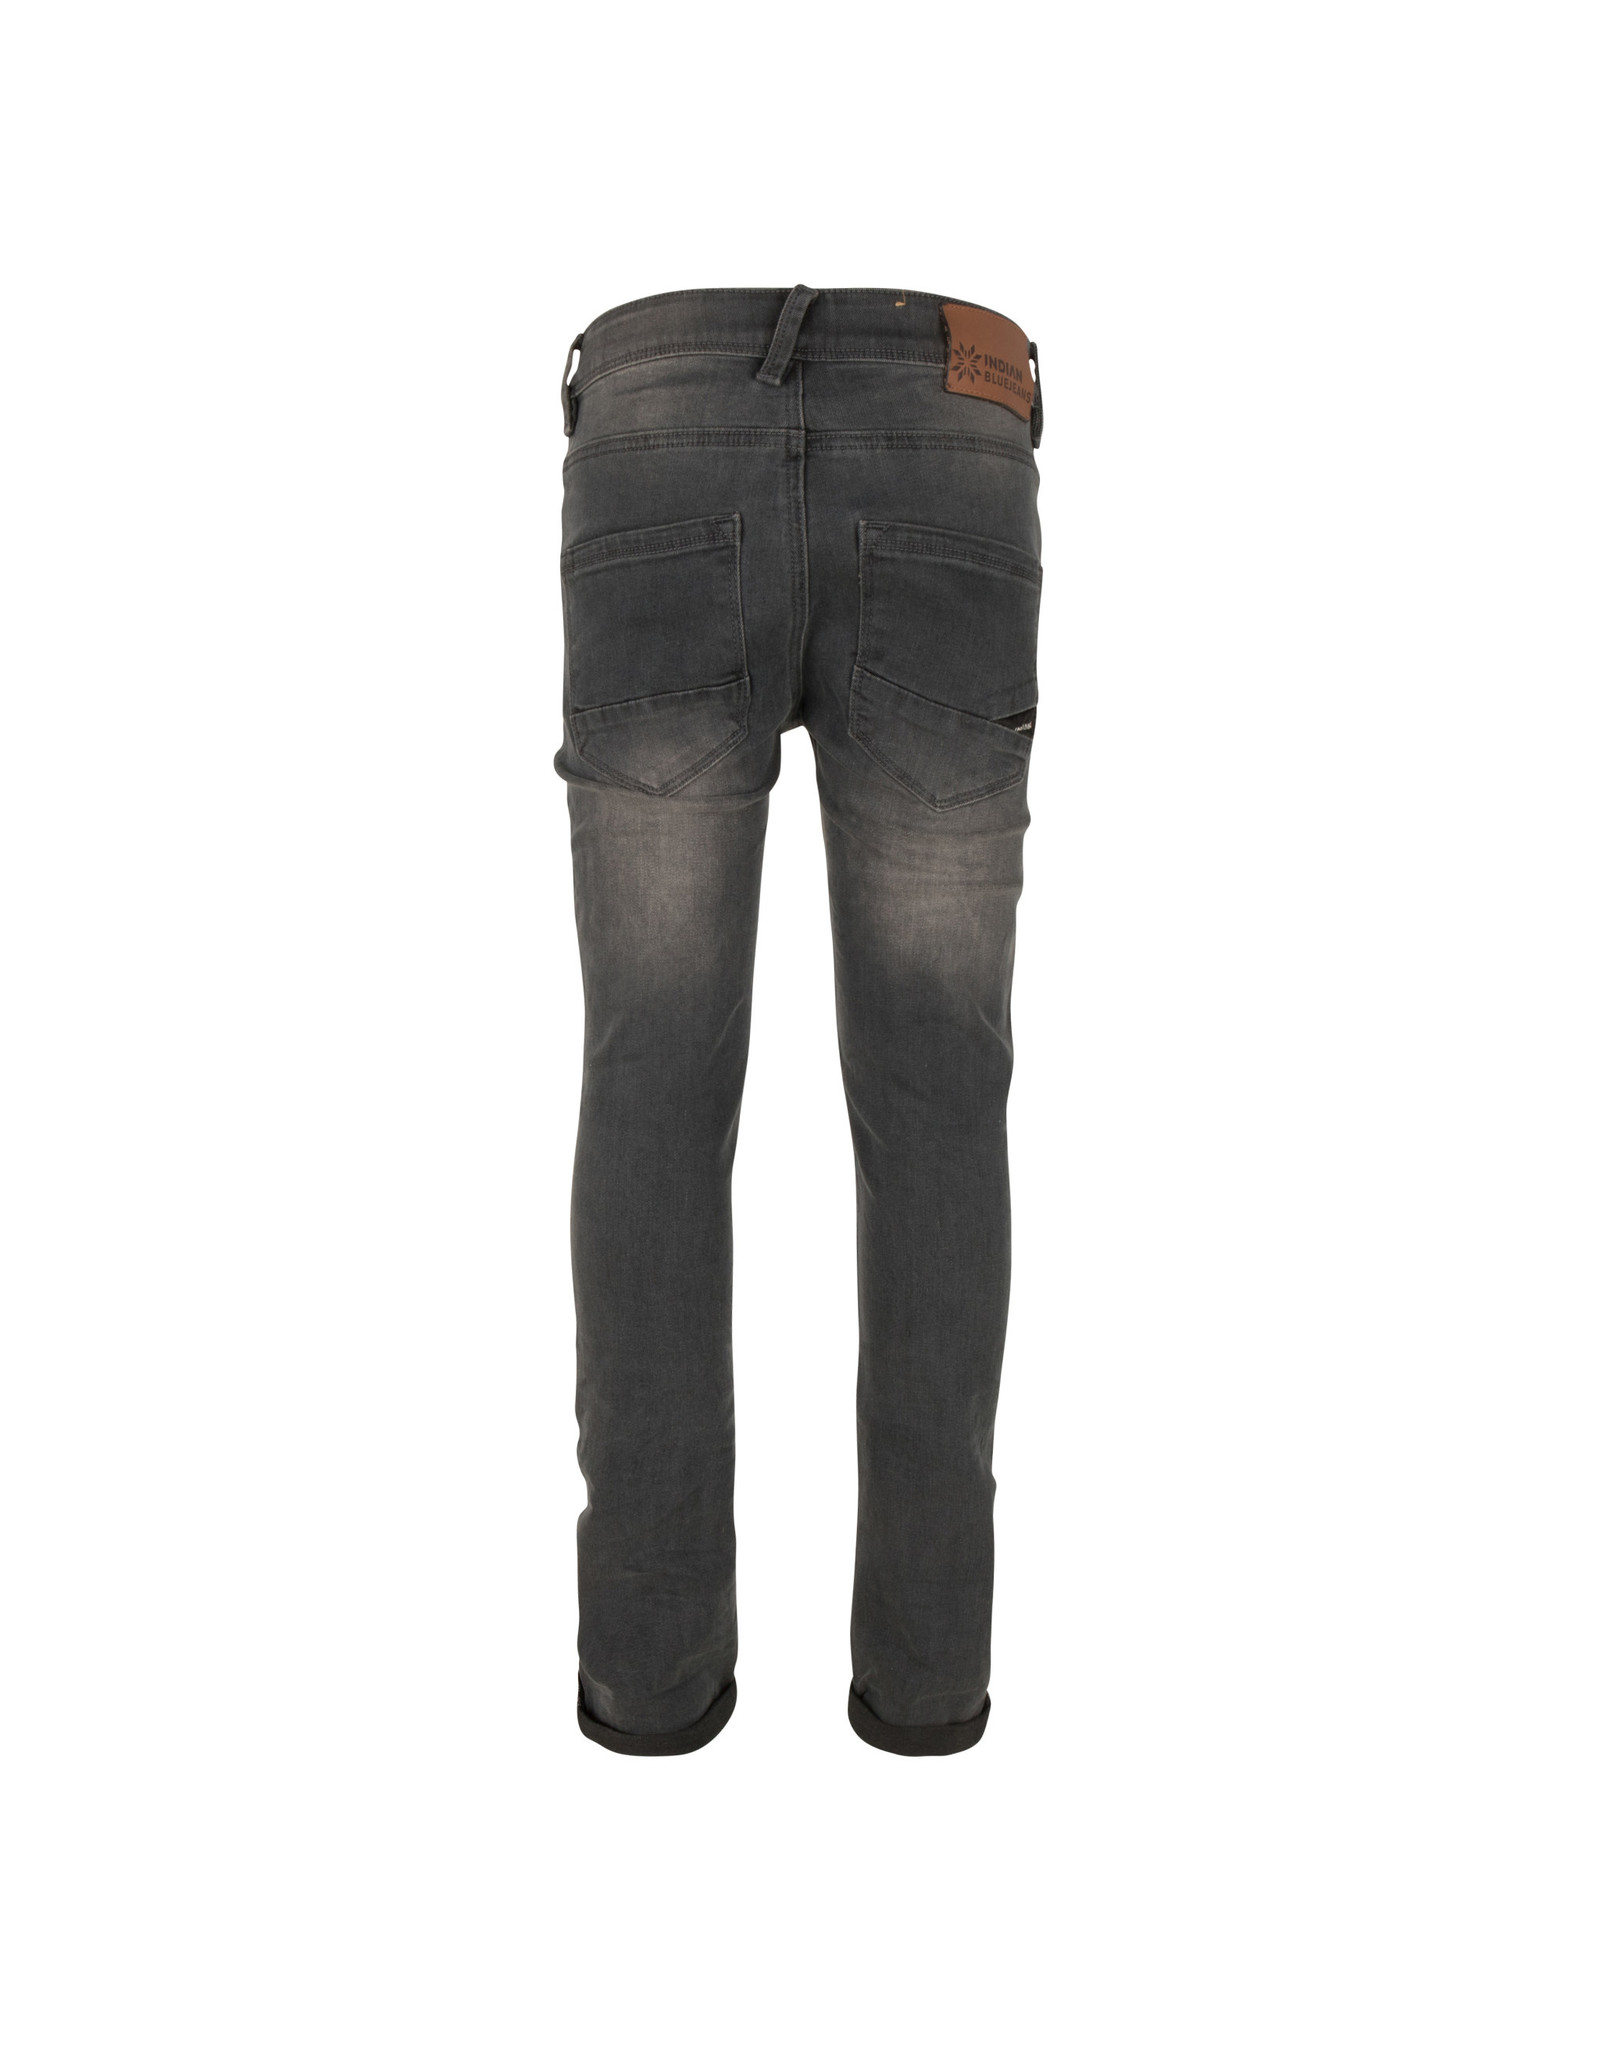 Indian Blue jeans IBB22-2751